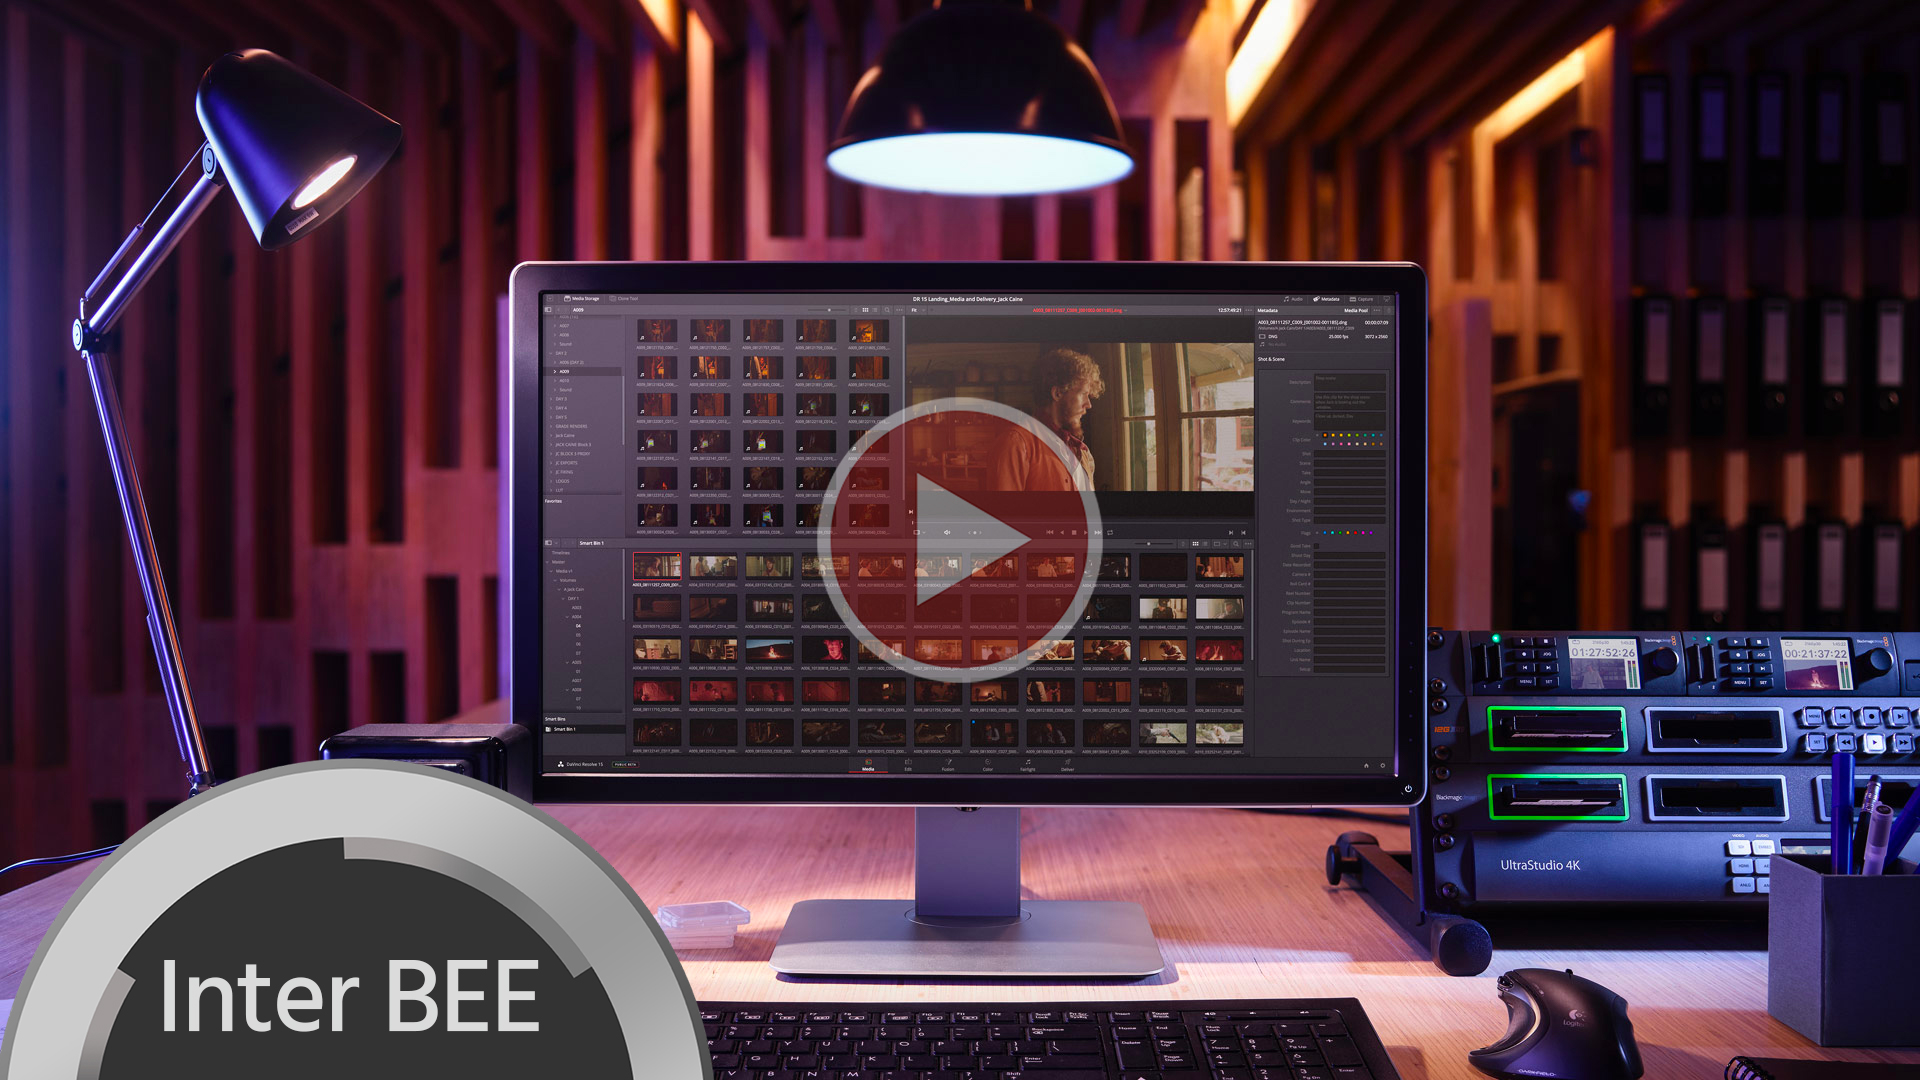 Entrevista con Blackmagic Design - DaVinci Resolve 15.2 y Blackmagic RAW